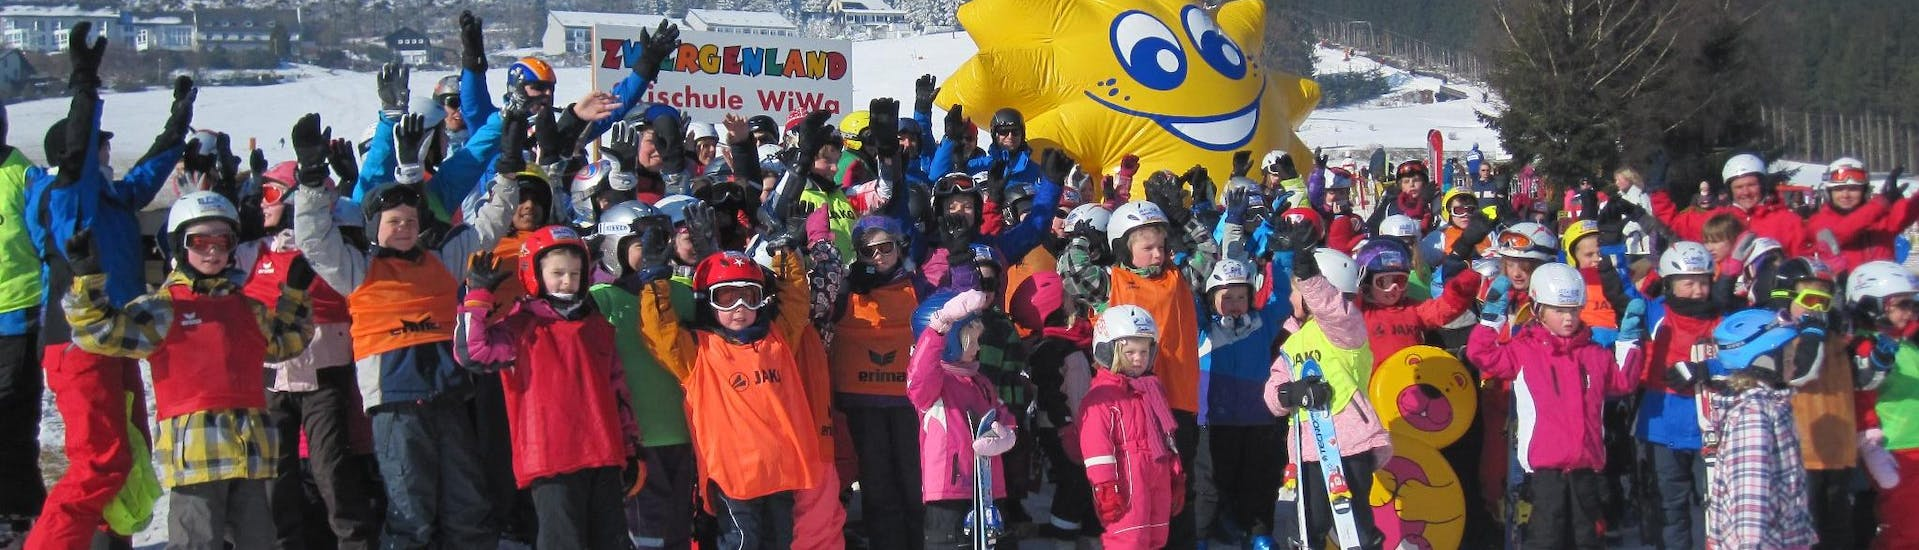 A group photo of happy children is being taken at the end of the day of the lessons in Willingen by a ski instructor from the WIWA | DSV Skischule & Skiverleih in Willingen.